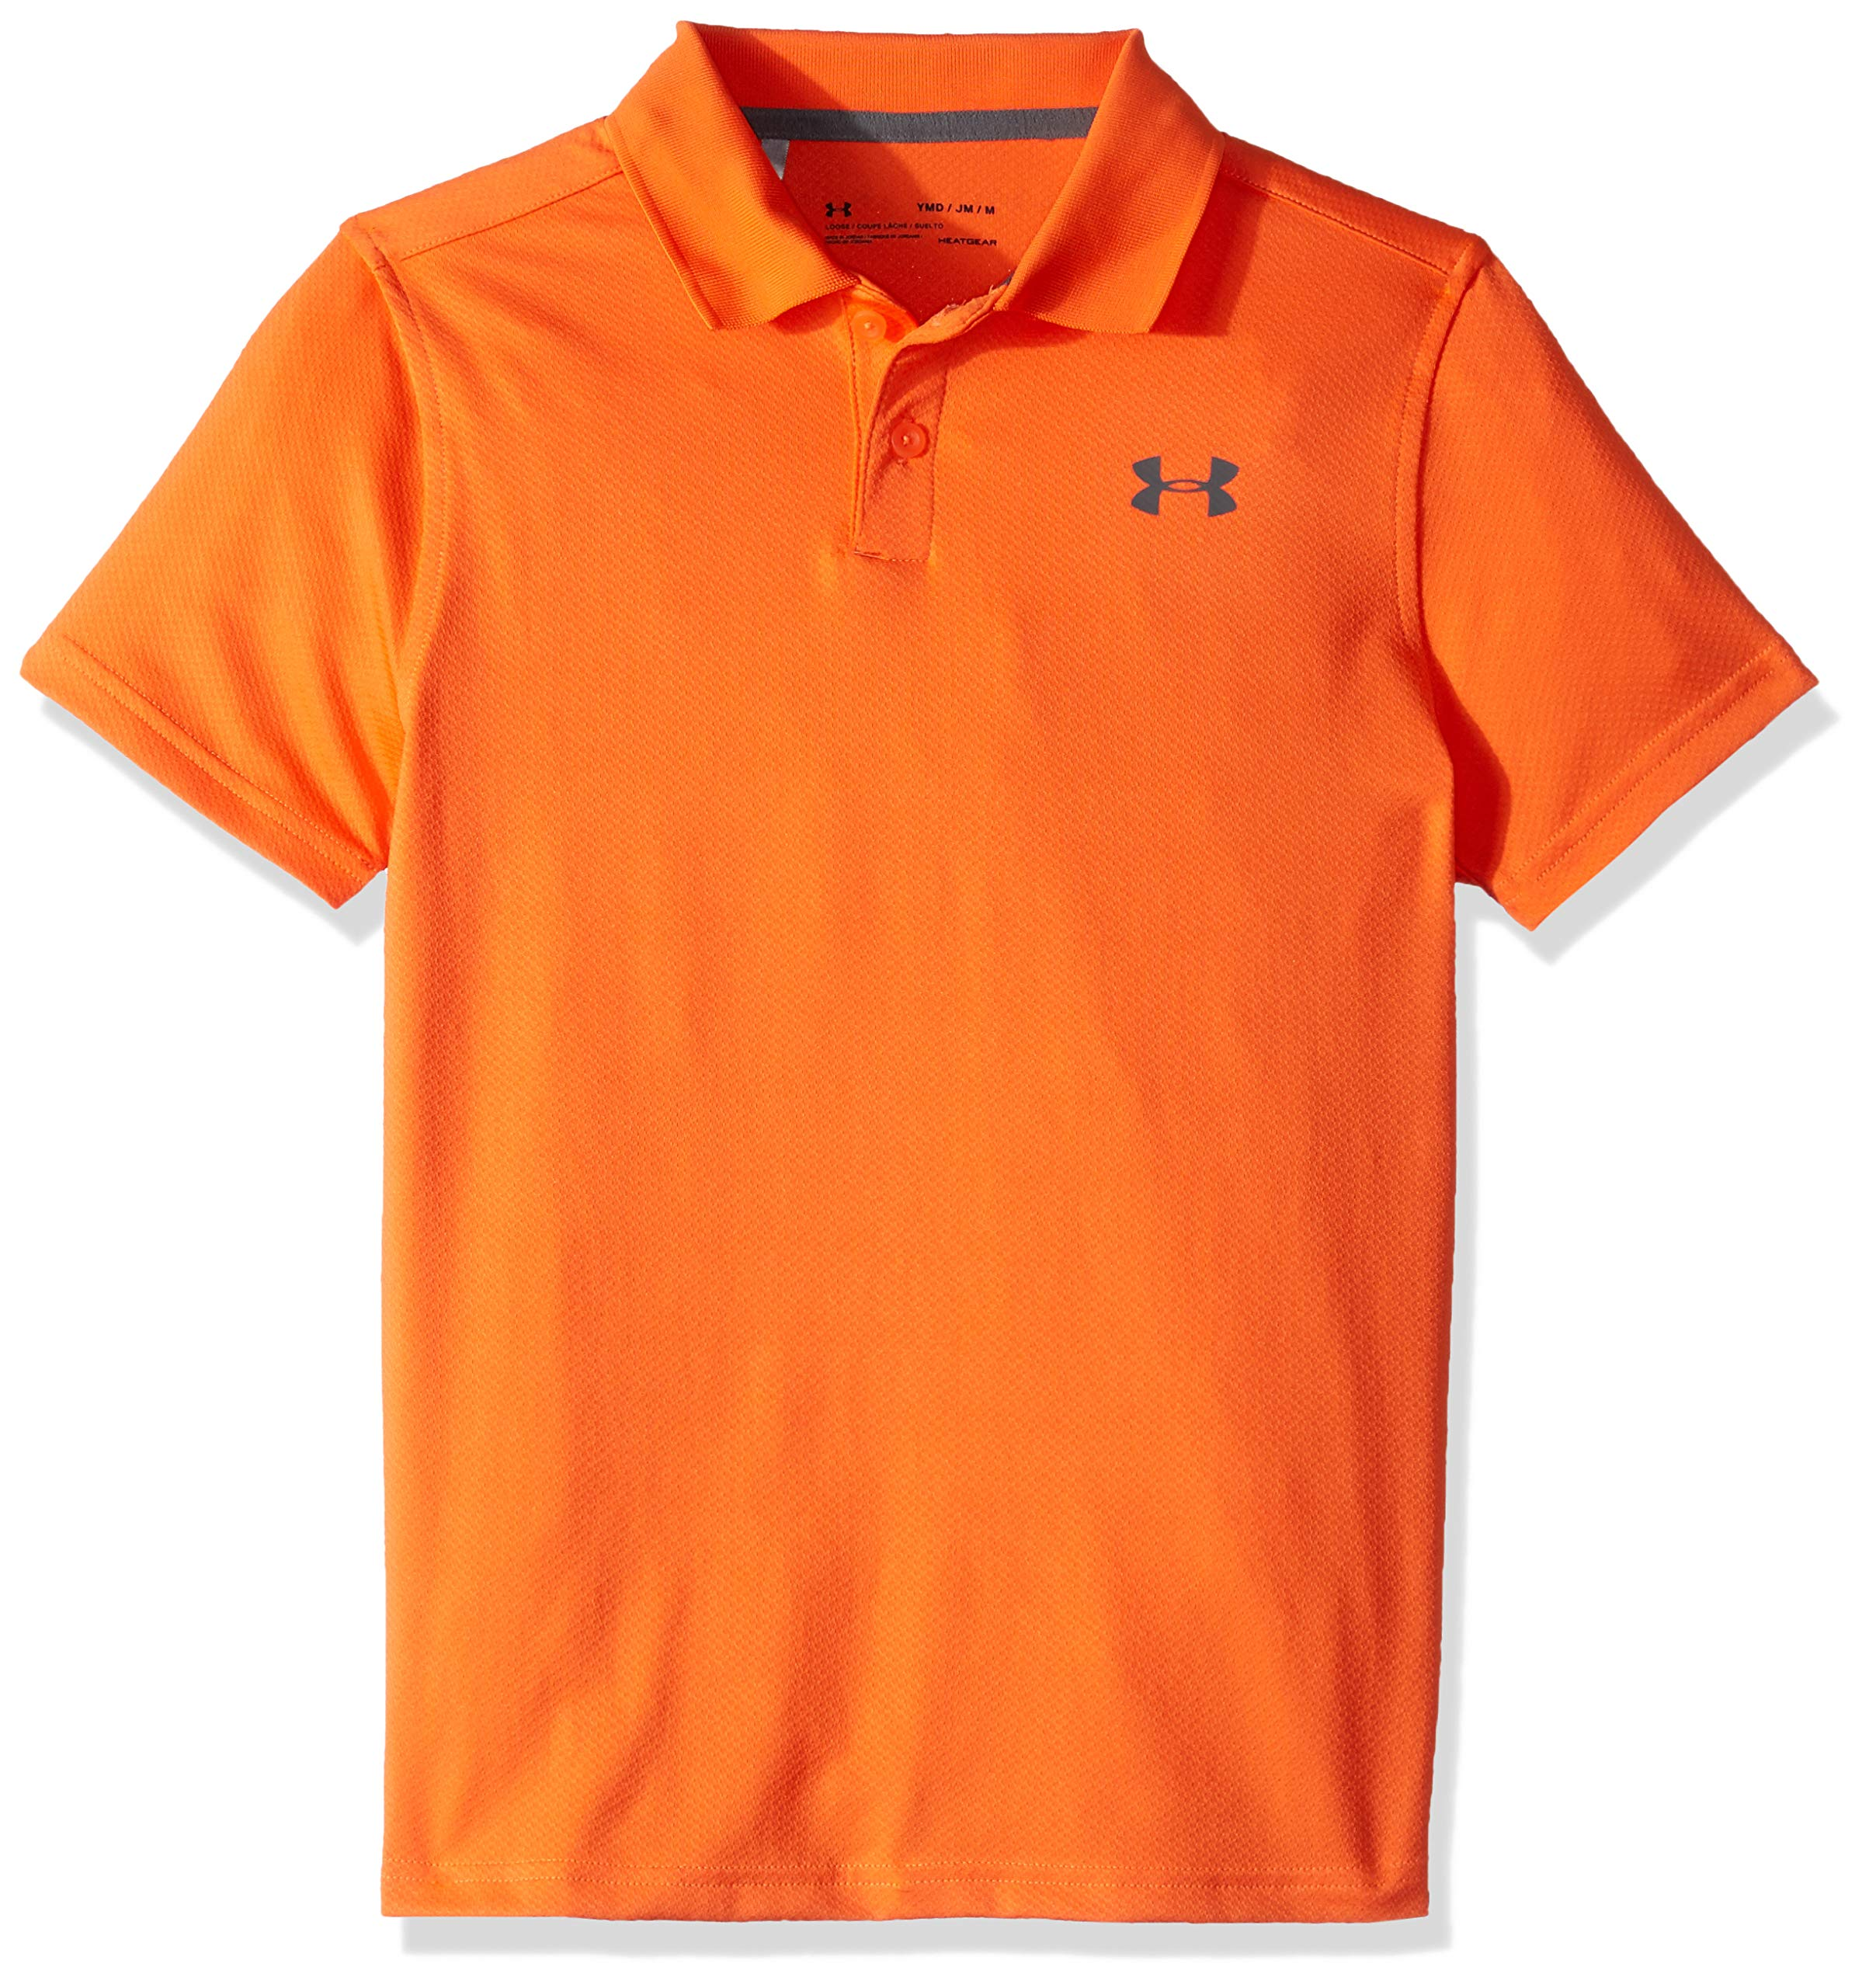 Under Armour Performance Polo 2.0, Papaya//Pitch Gray, Youth X-Small